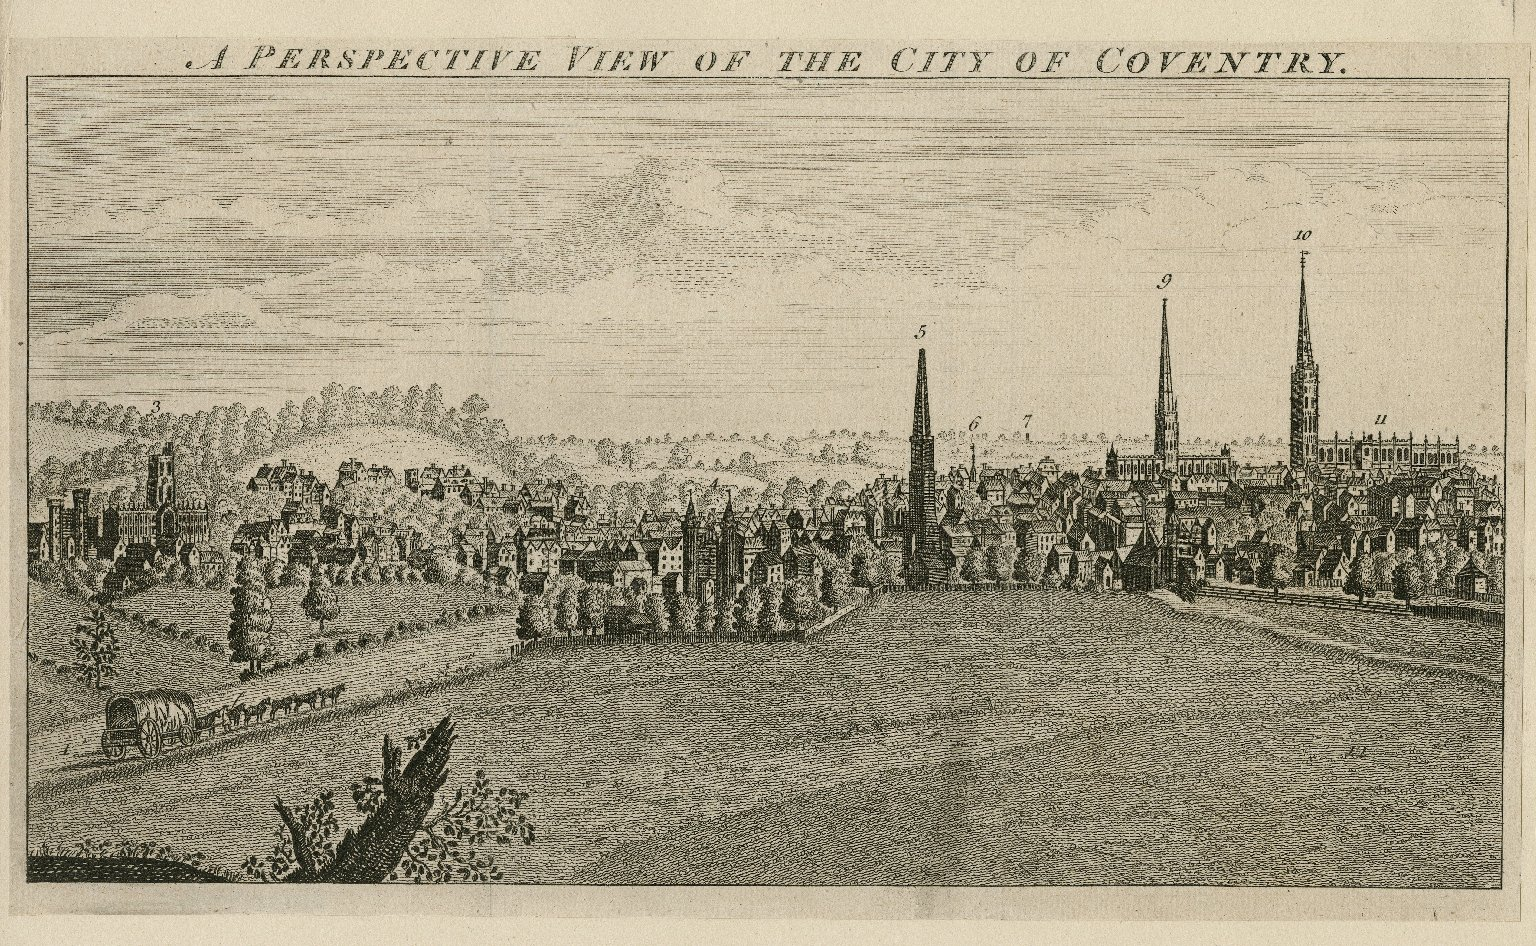 A perspective view of the city of Coventry [graphic].